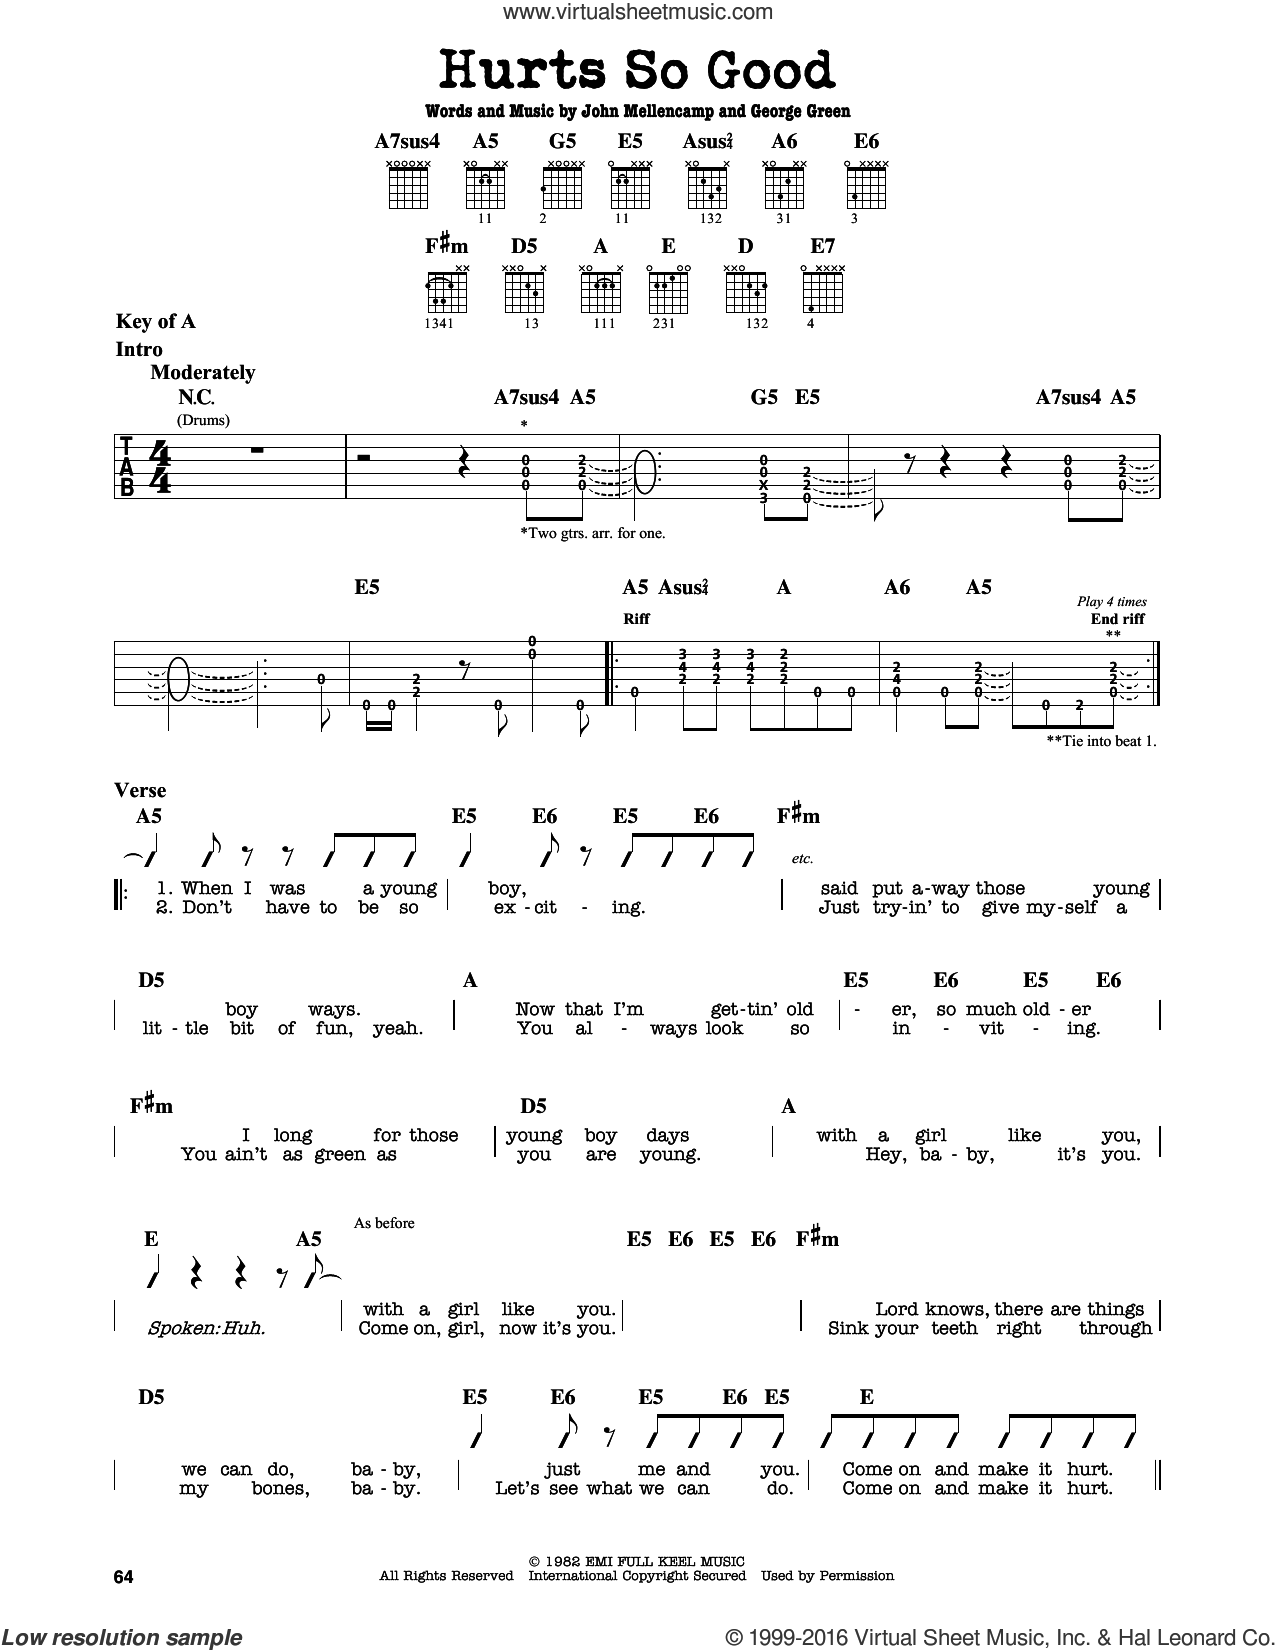 Hurts So Good sheet music for guitar solo (lead sheet) by John Mellencamp. Score Image Preview.